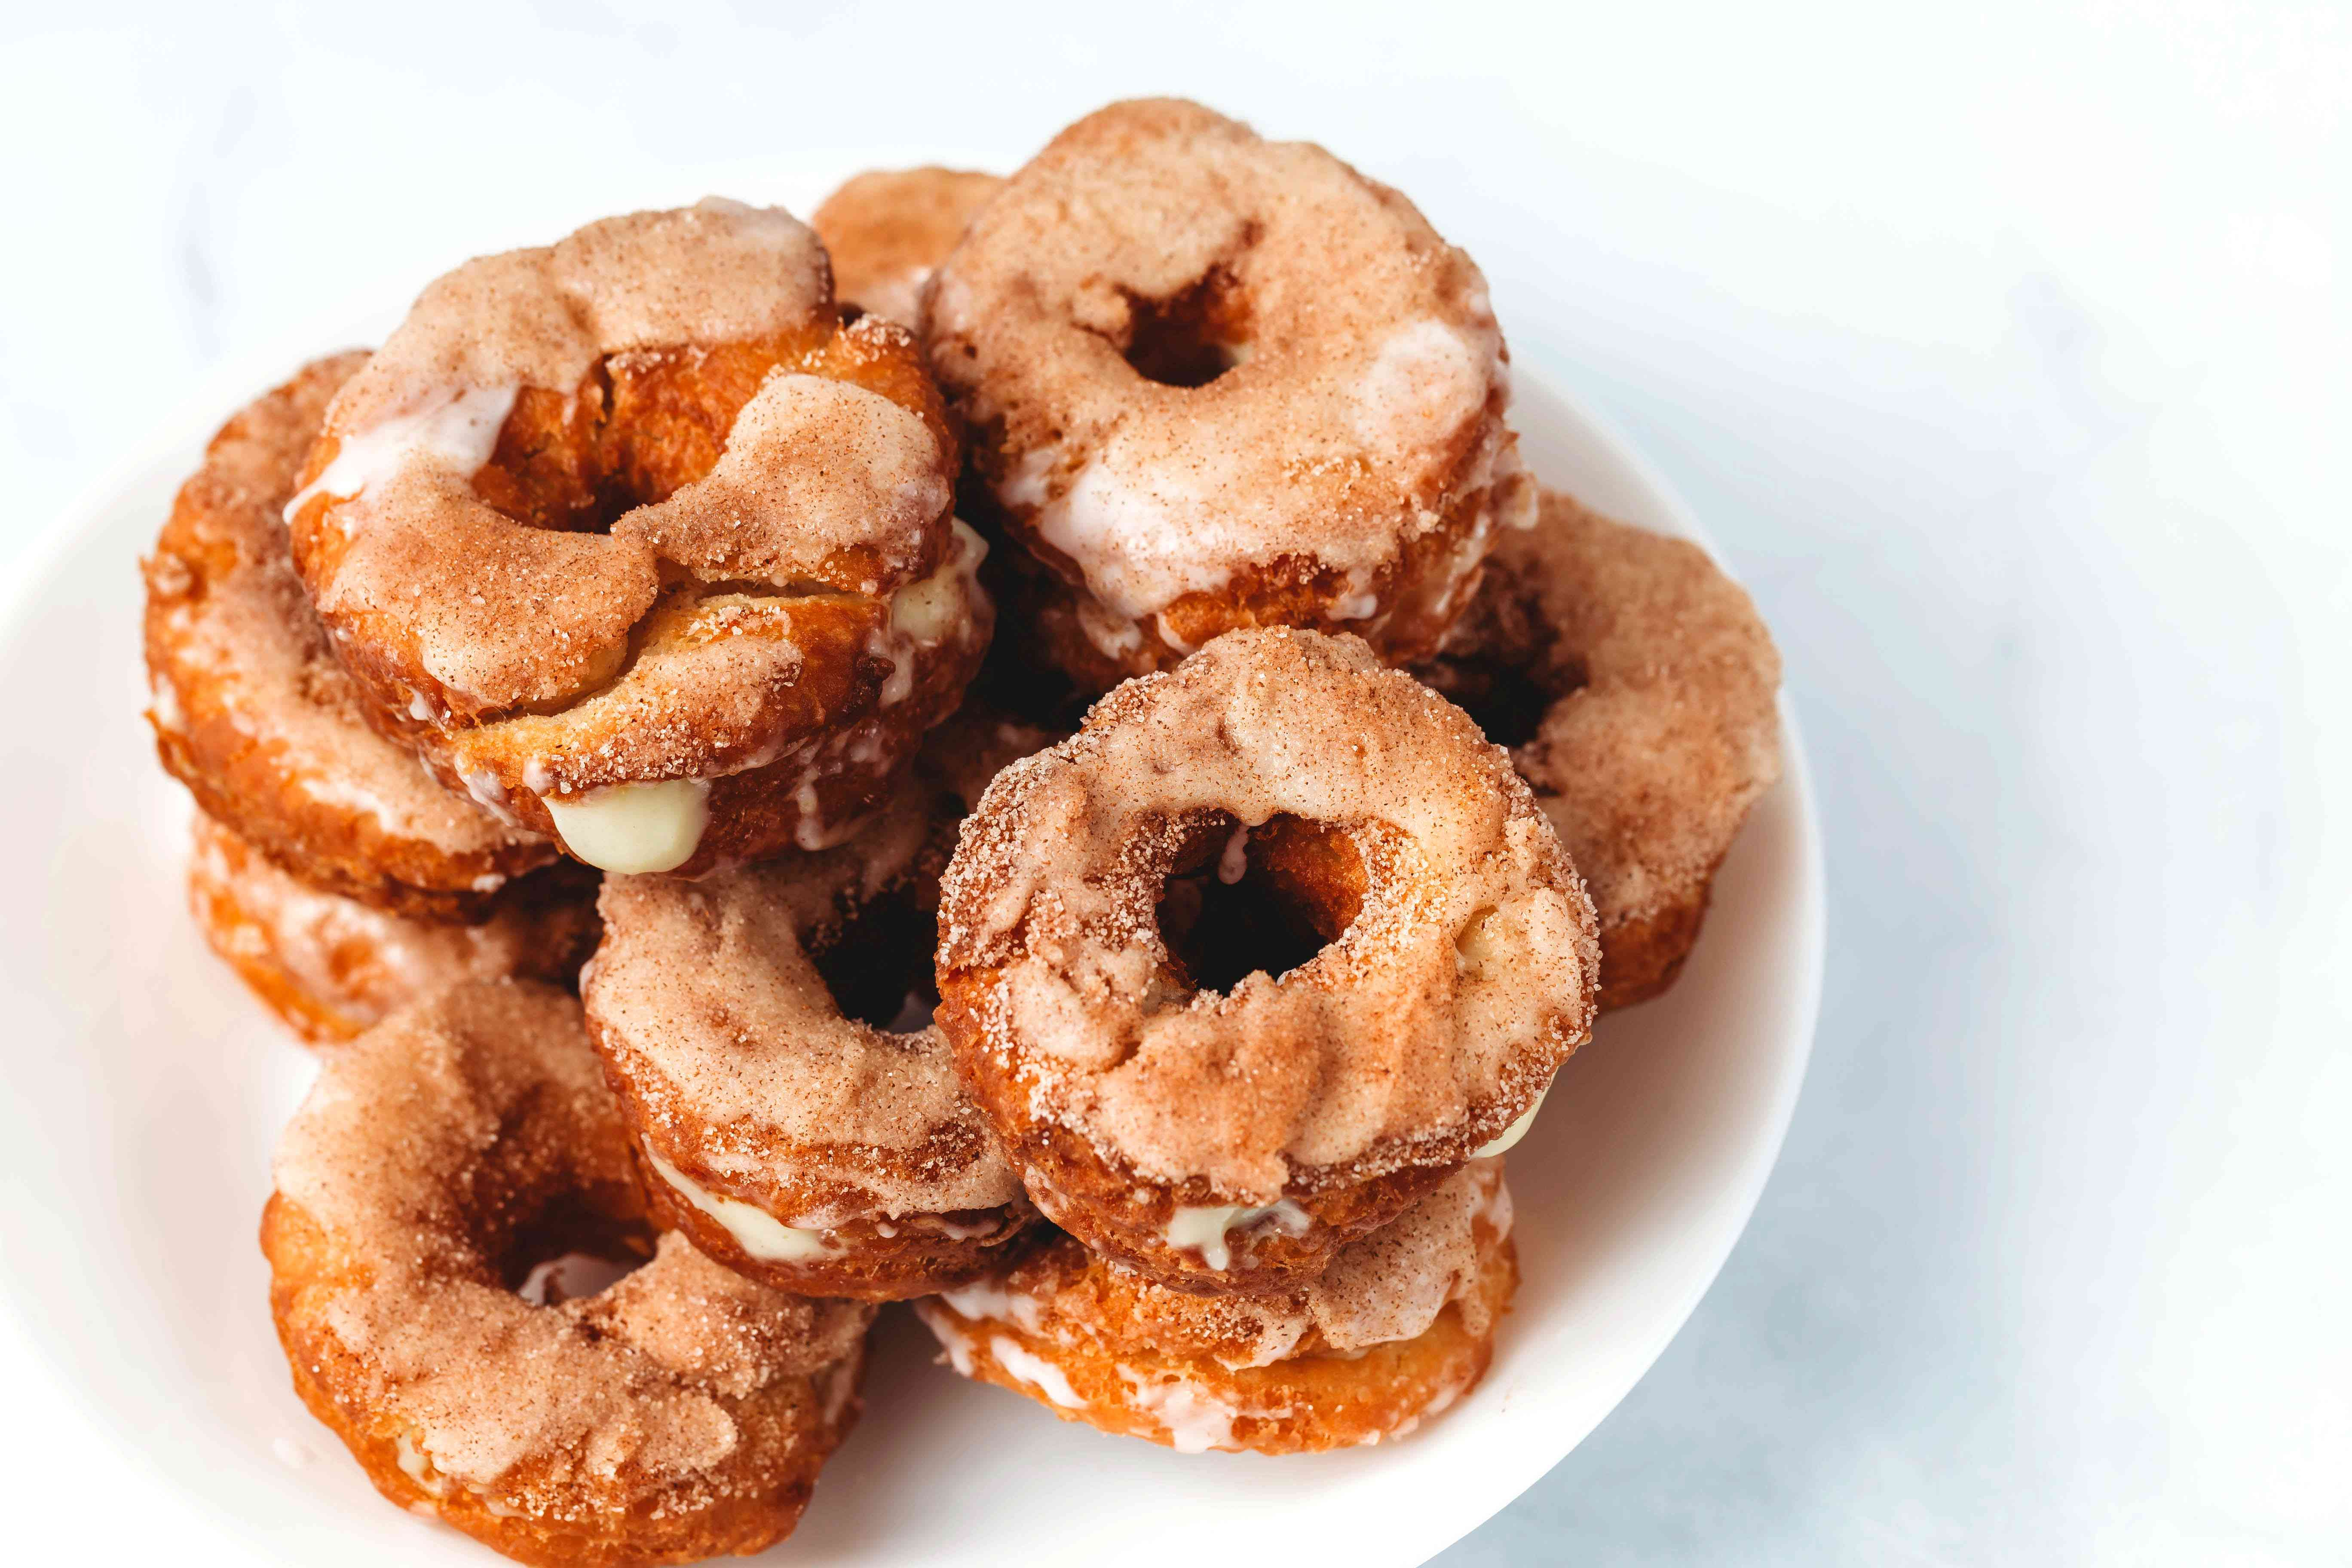 Homemade Cronuts on a plate